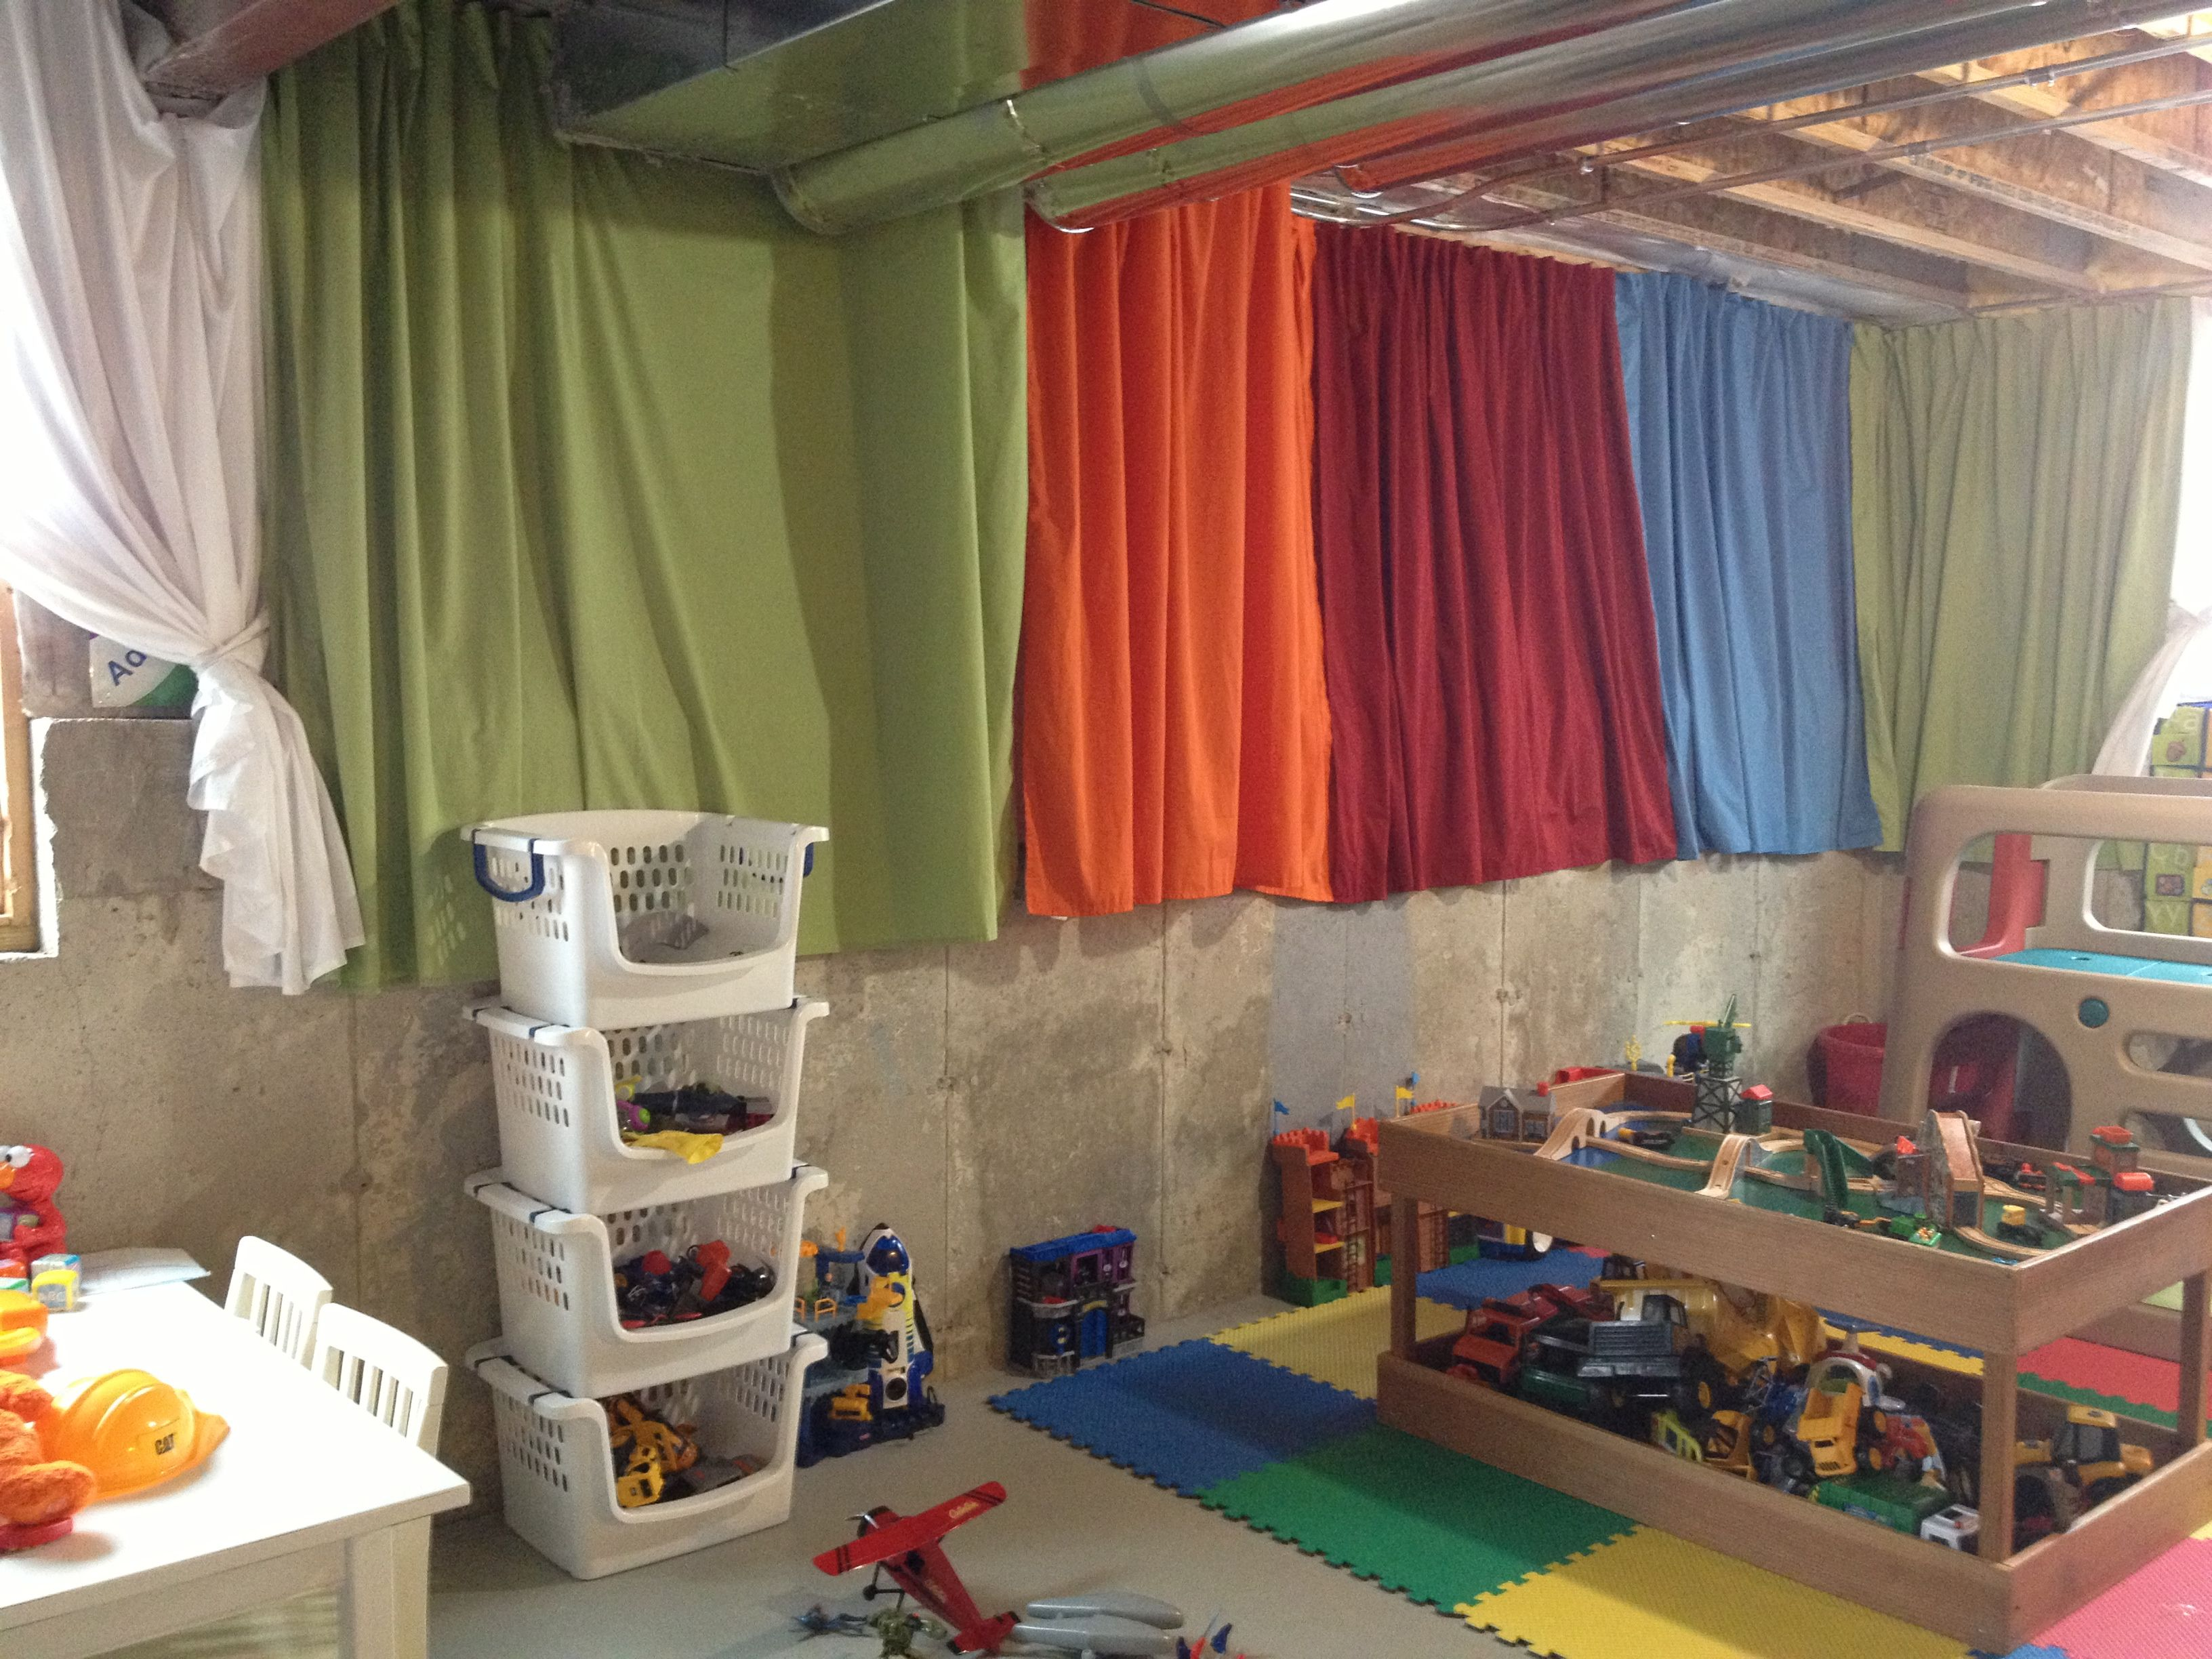 Brighten Up An Unfinished Basement Playroom With $4 Twin